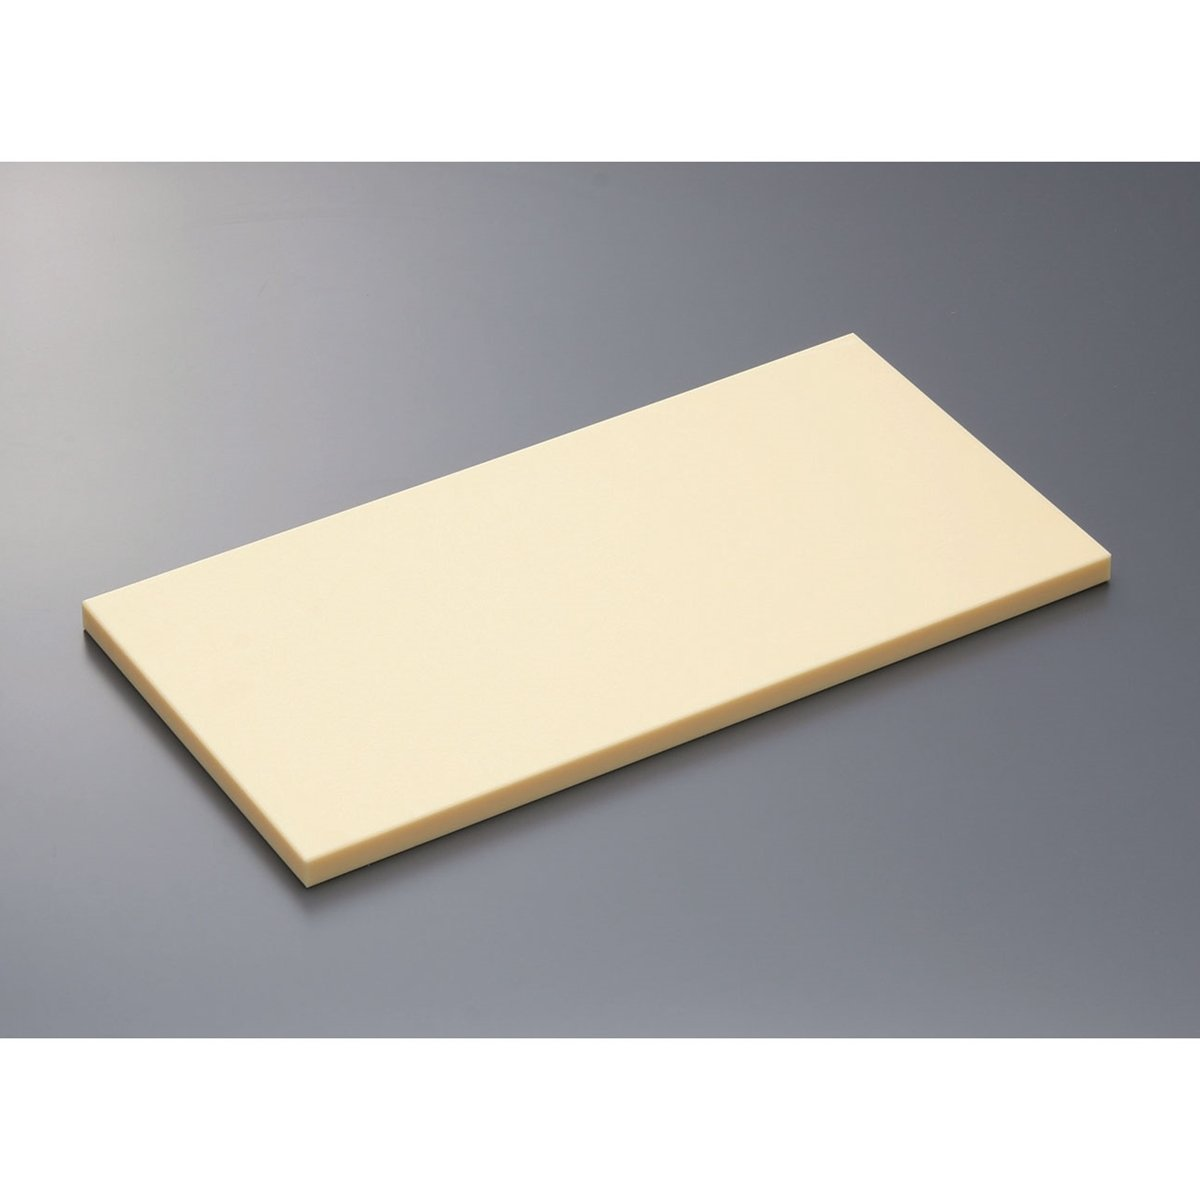 "Tenryo Embossed Hi-Soft Cutting Board 0.75"" Thickness"